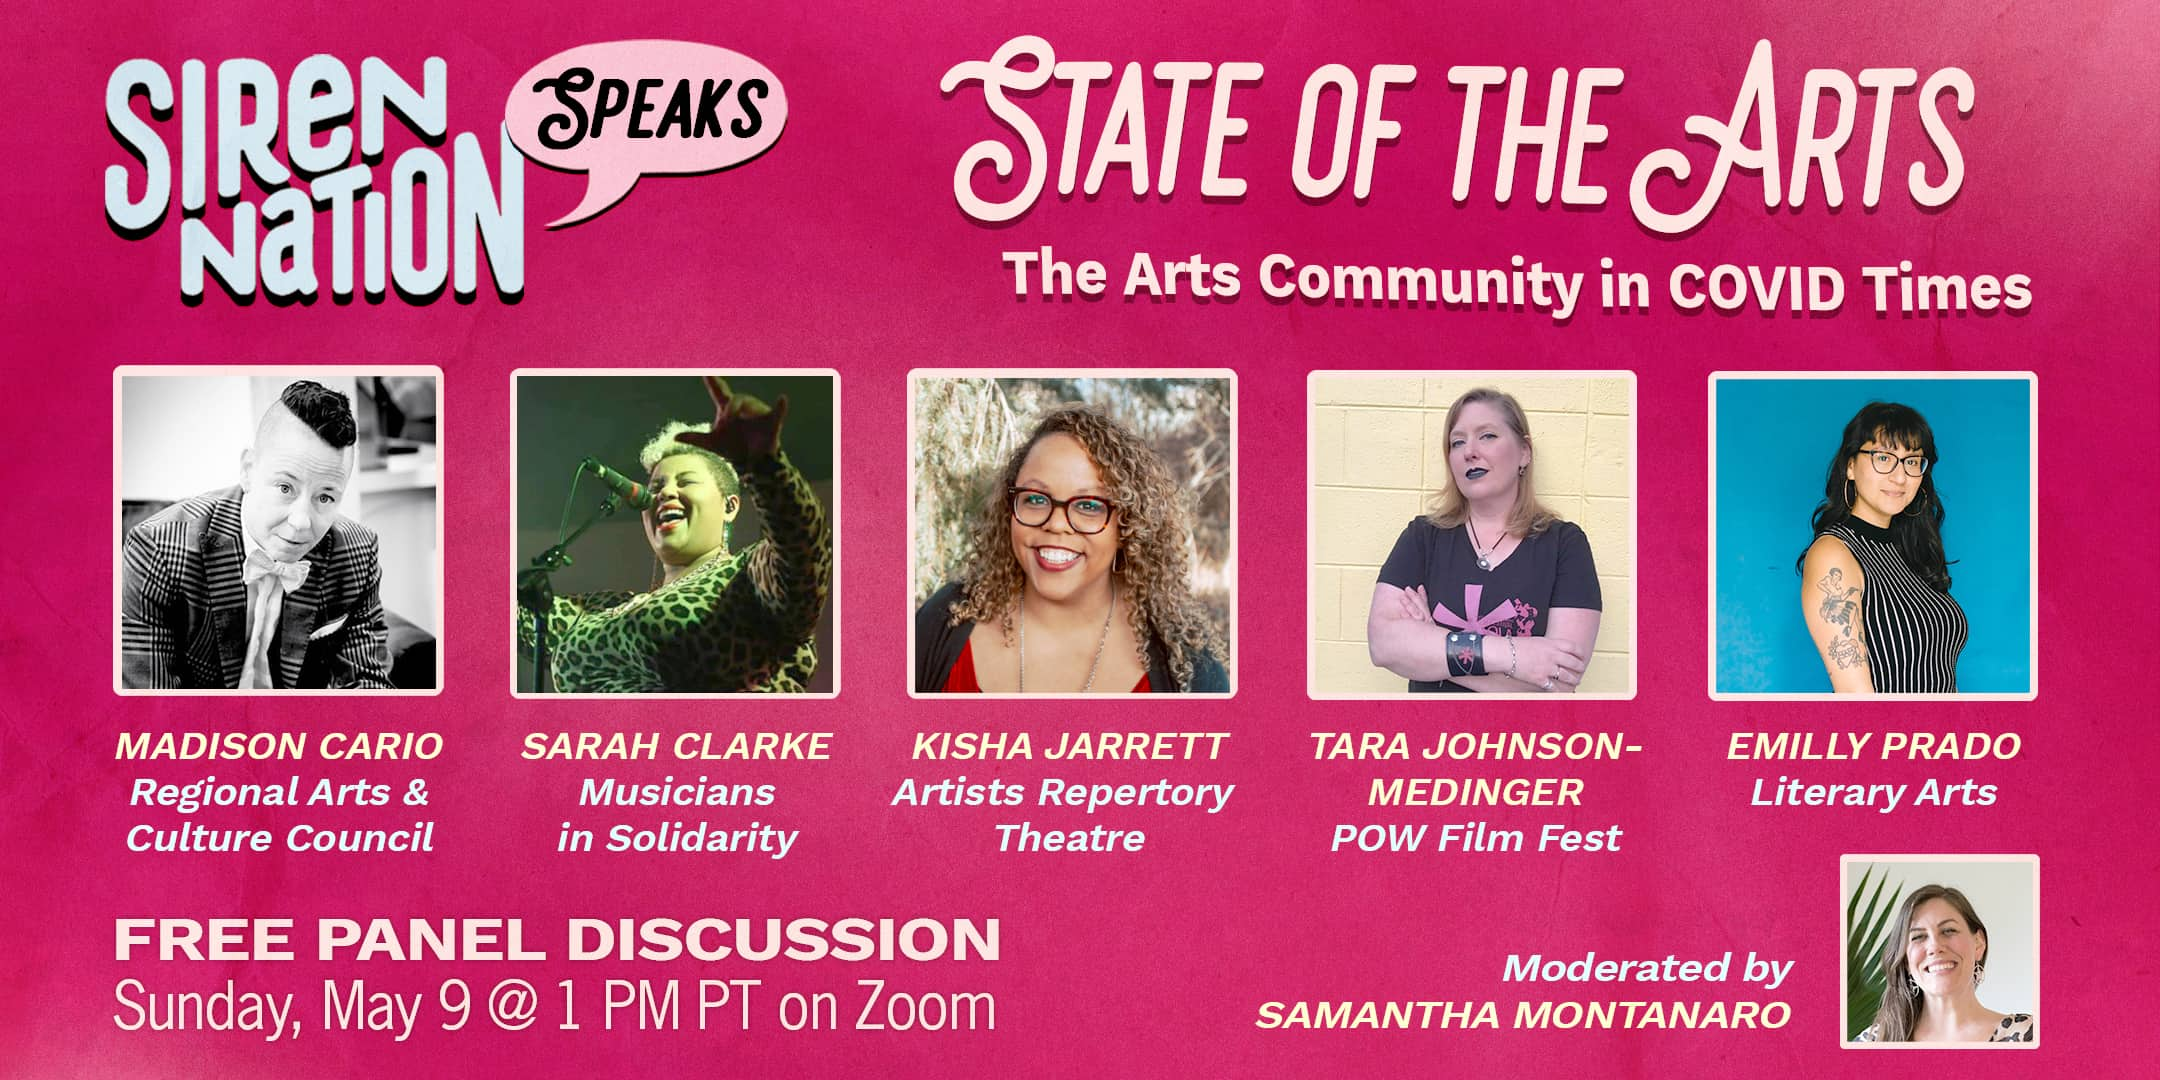 Header image for event page, Siren Nation Speaks: The State of the Arts in Covid Times